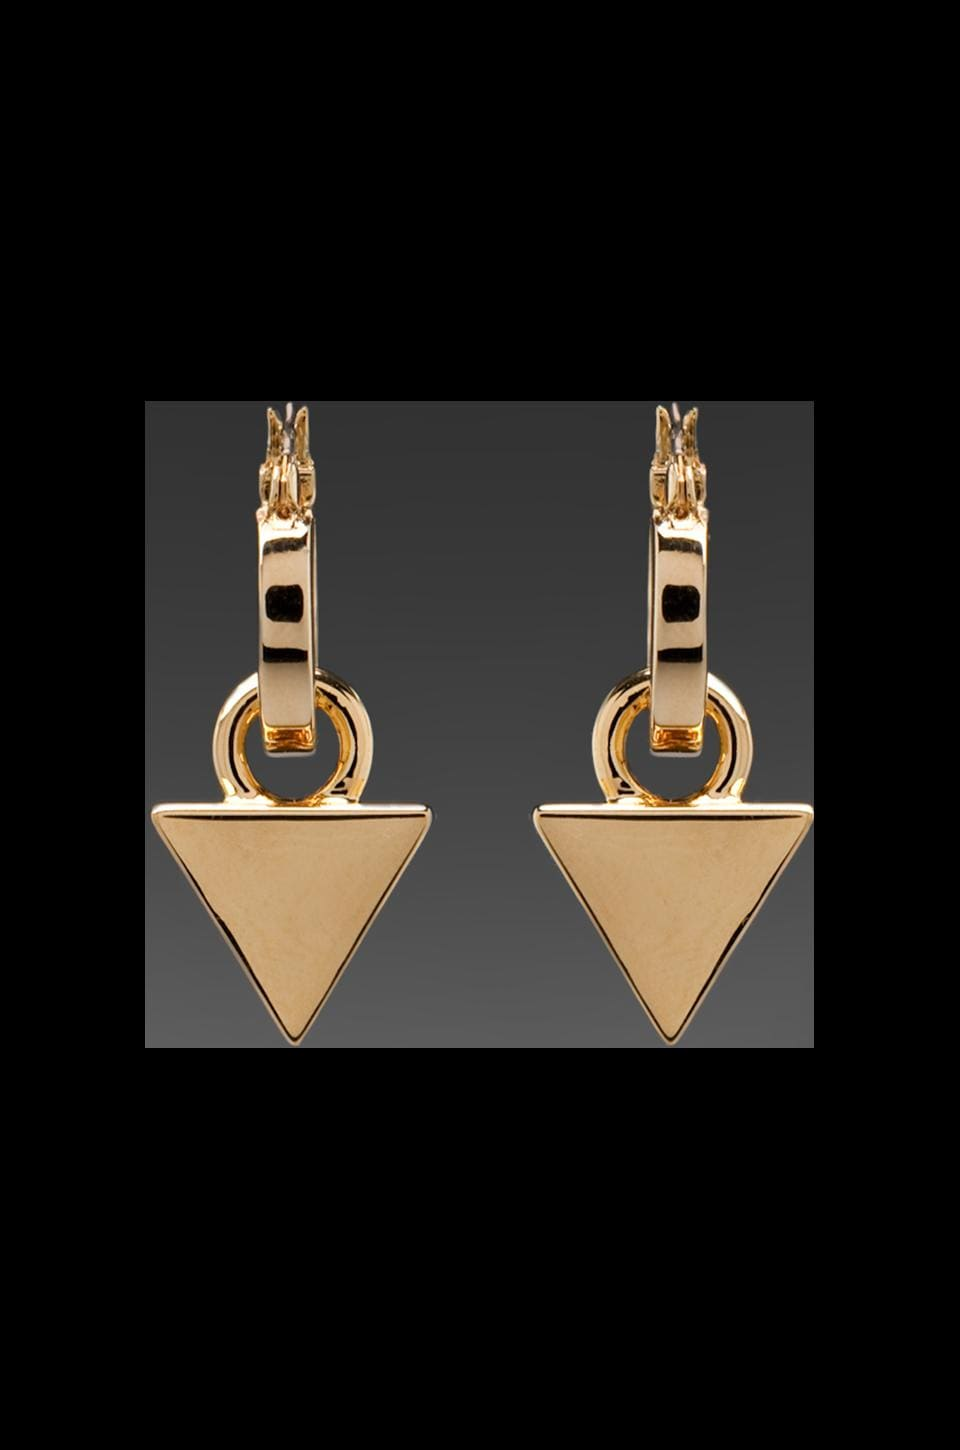 Roman Luxe Luxe Hoop Triangle Earrings in Gold